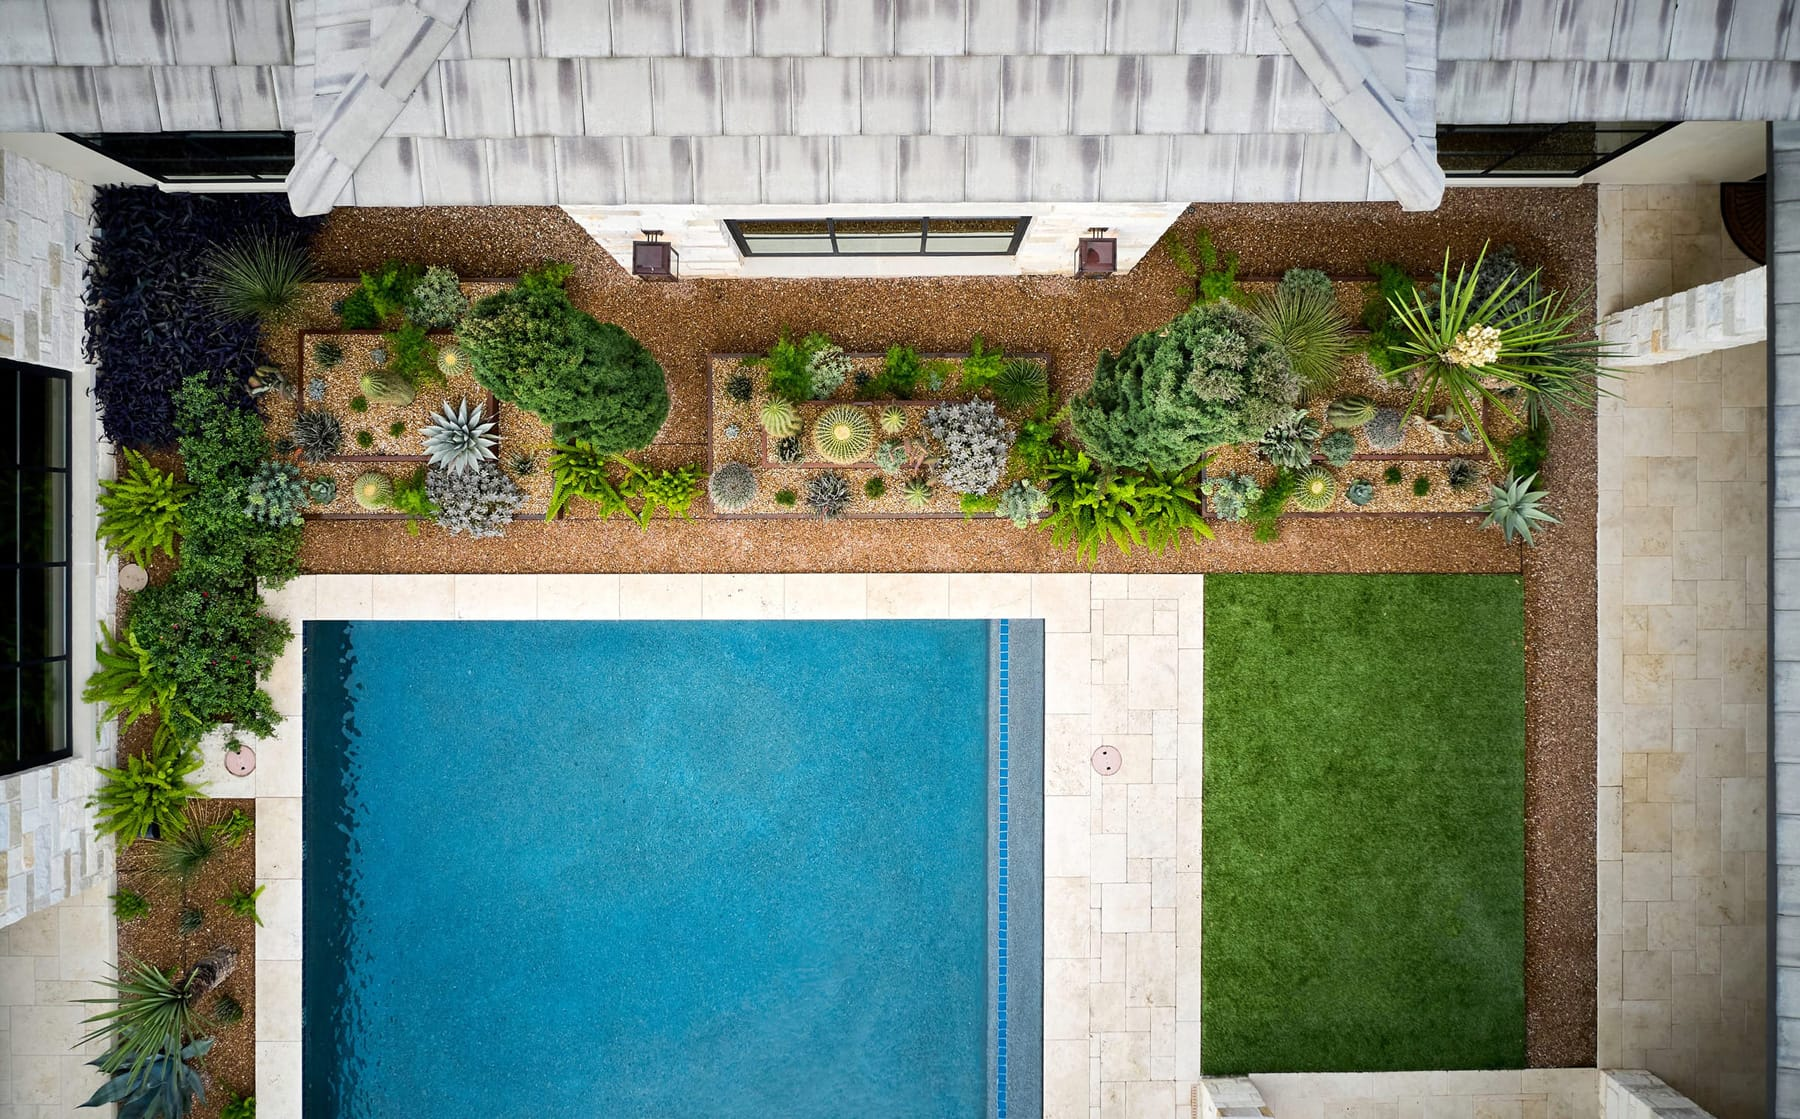 Blanton Residence sustainable landscape design in Gruene, TX by LUSH GreenScape Design